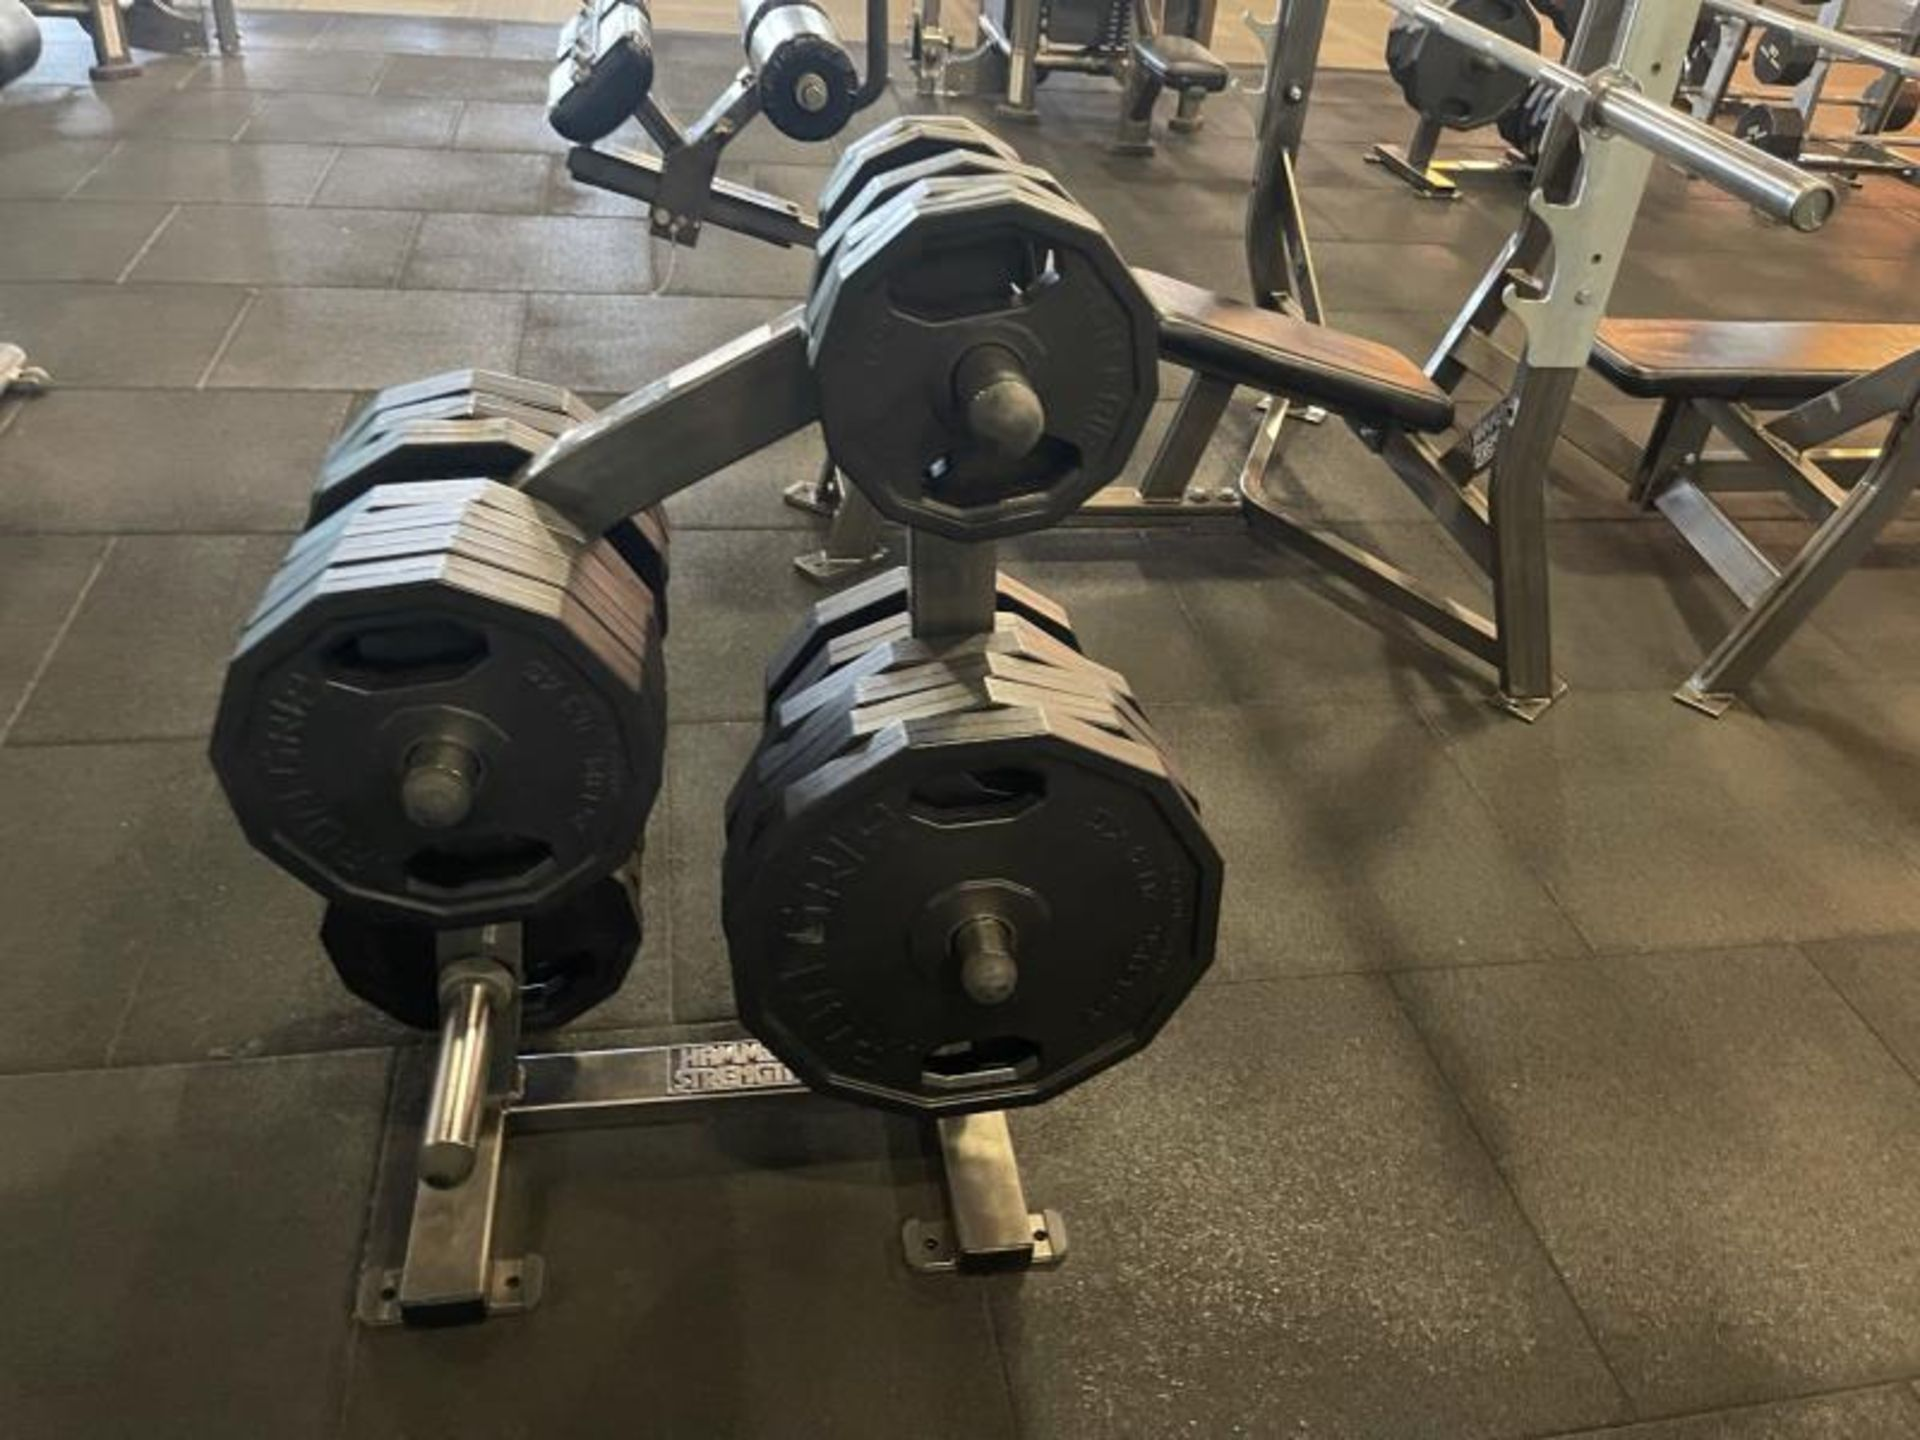 Hammer Strength Weighted Tree with Iron Grip Weight Plates - Image 2 of 3